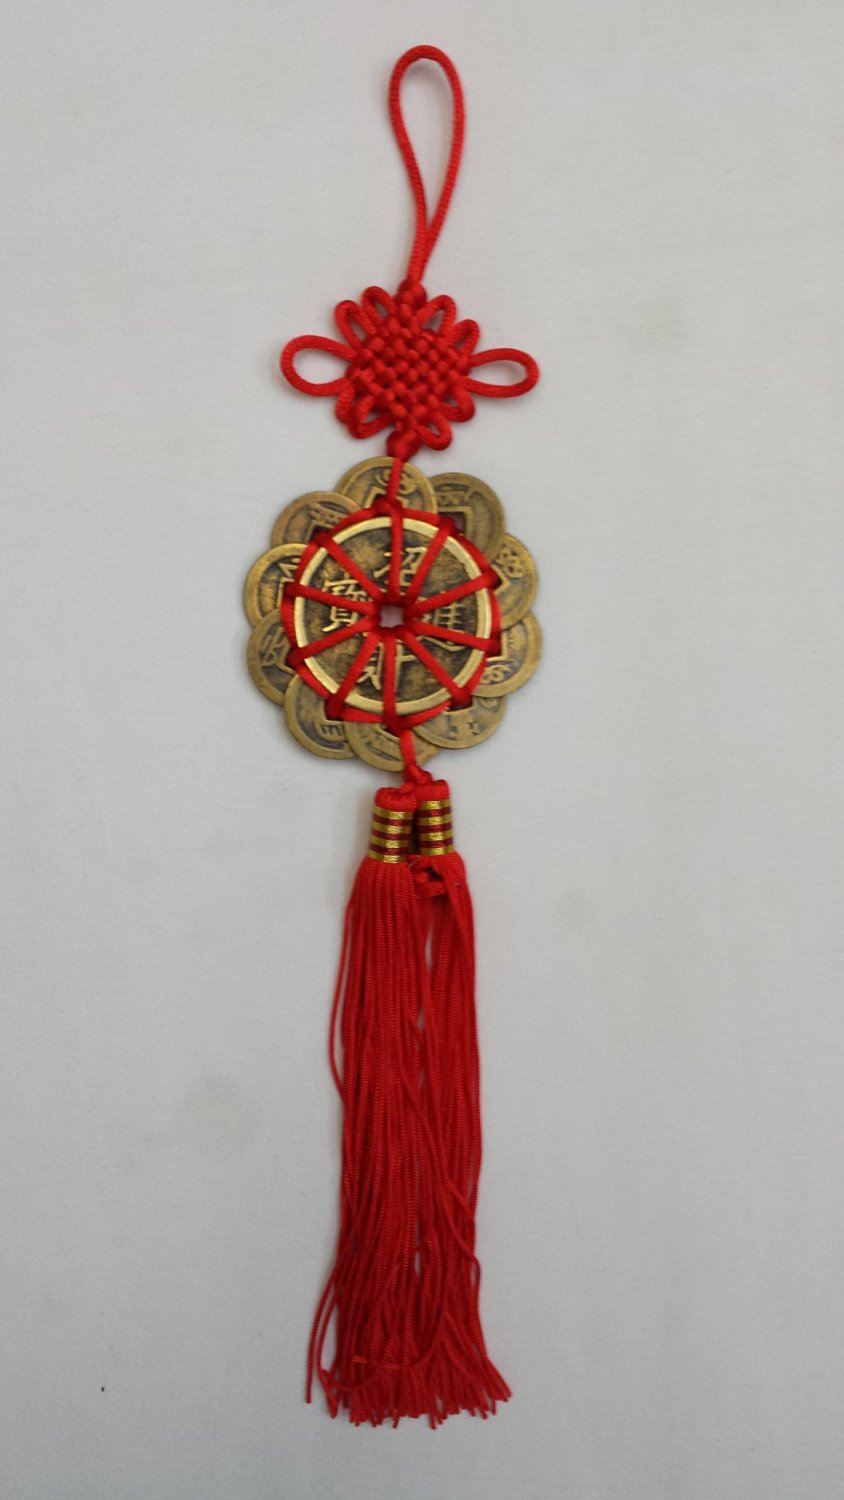 Cheap Good Luck Chinese Symbol Find Good Luck Chinese Symbol Deals